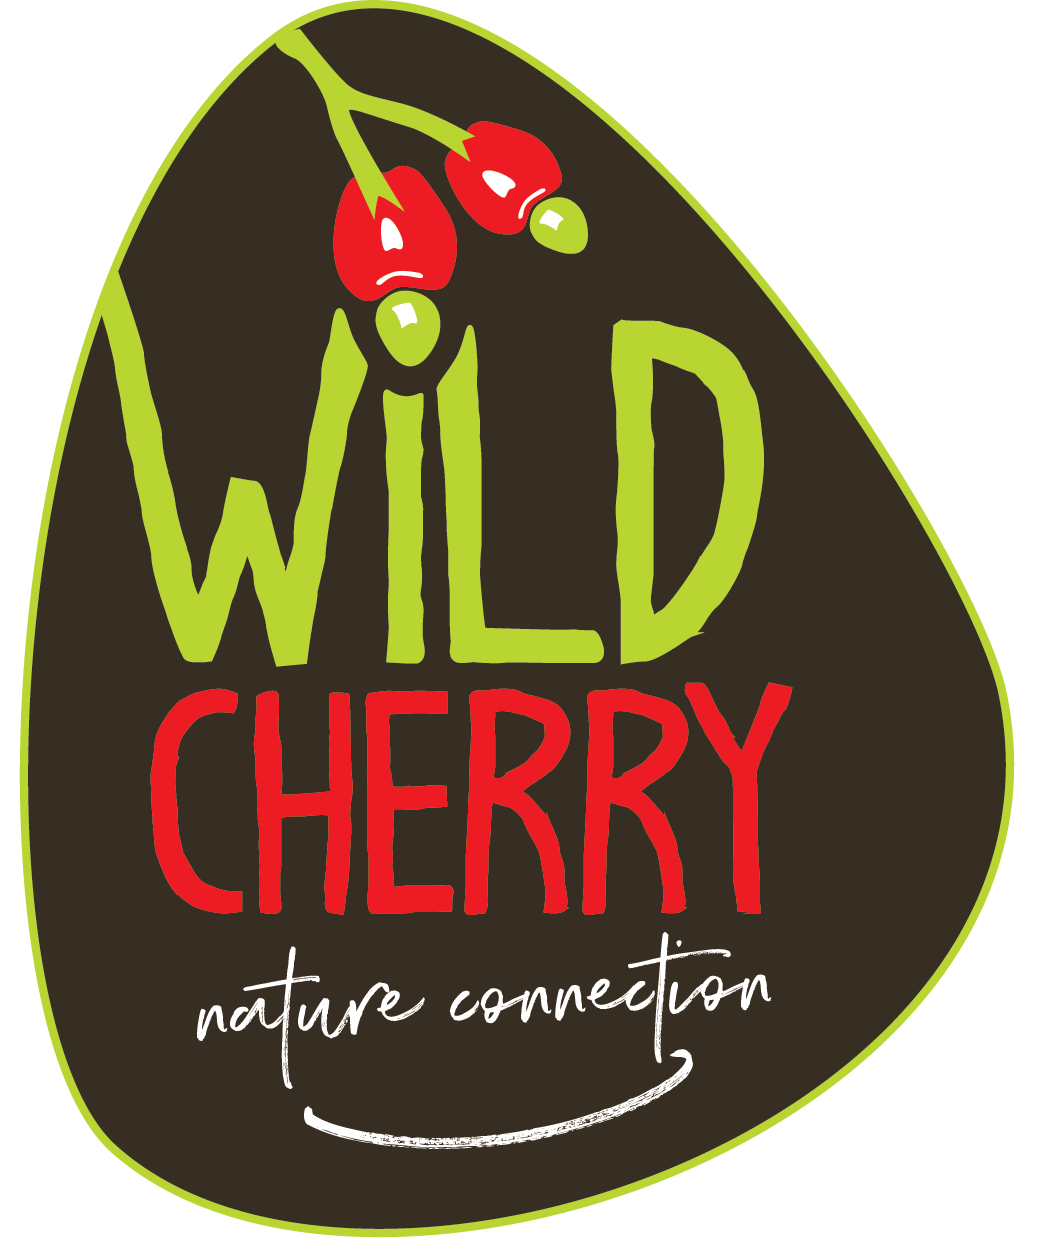 Wild Cherry Nature Connection